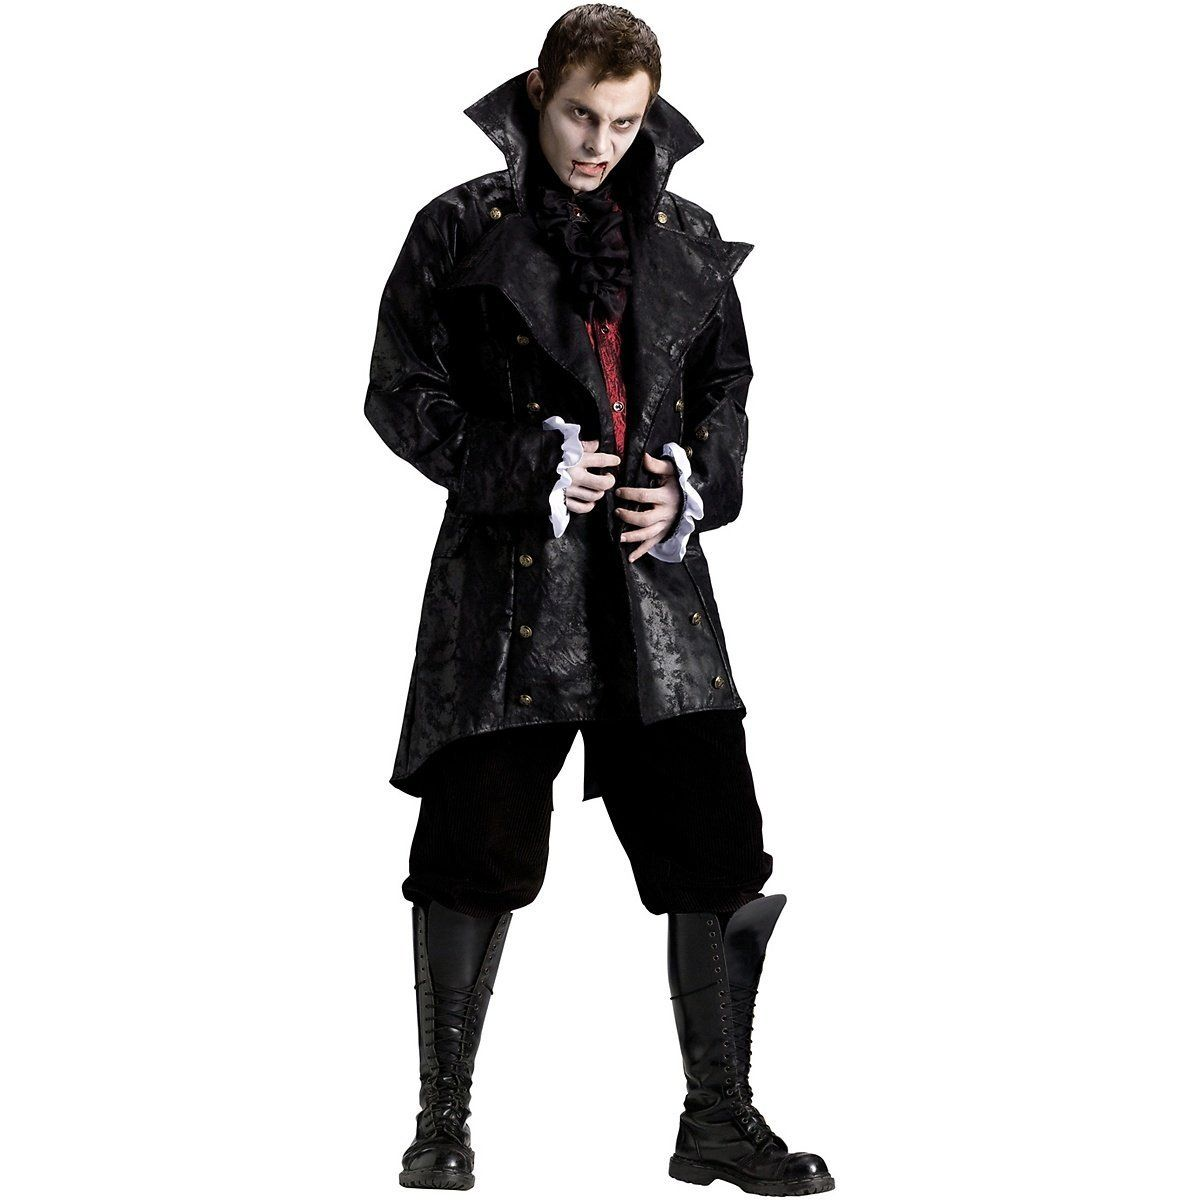 FunWorld 199319 V&ire Jacket Adult Costume - Black - One-Size - Standard Amazon  sc 1 st  Pinterest : vampire costume amazon  - Germanpascual.Com